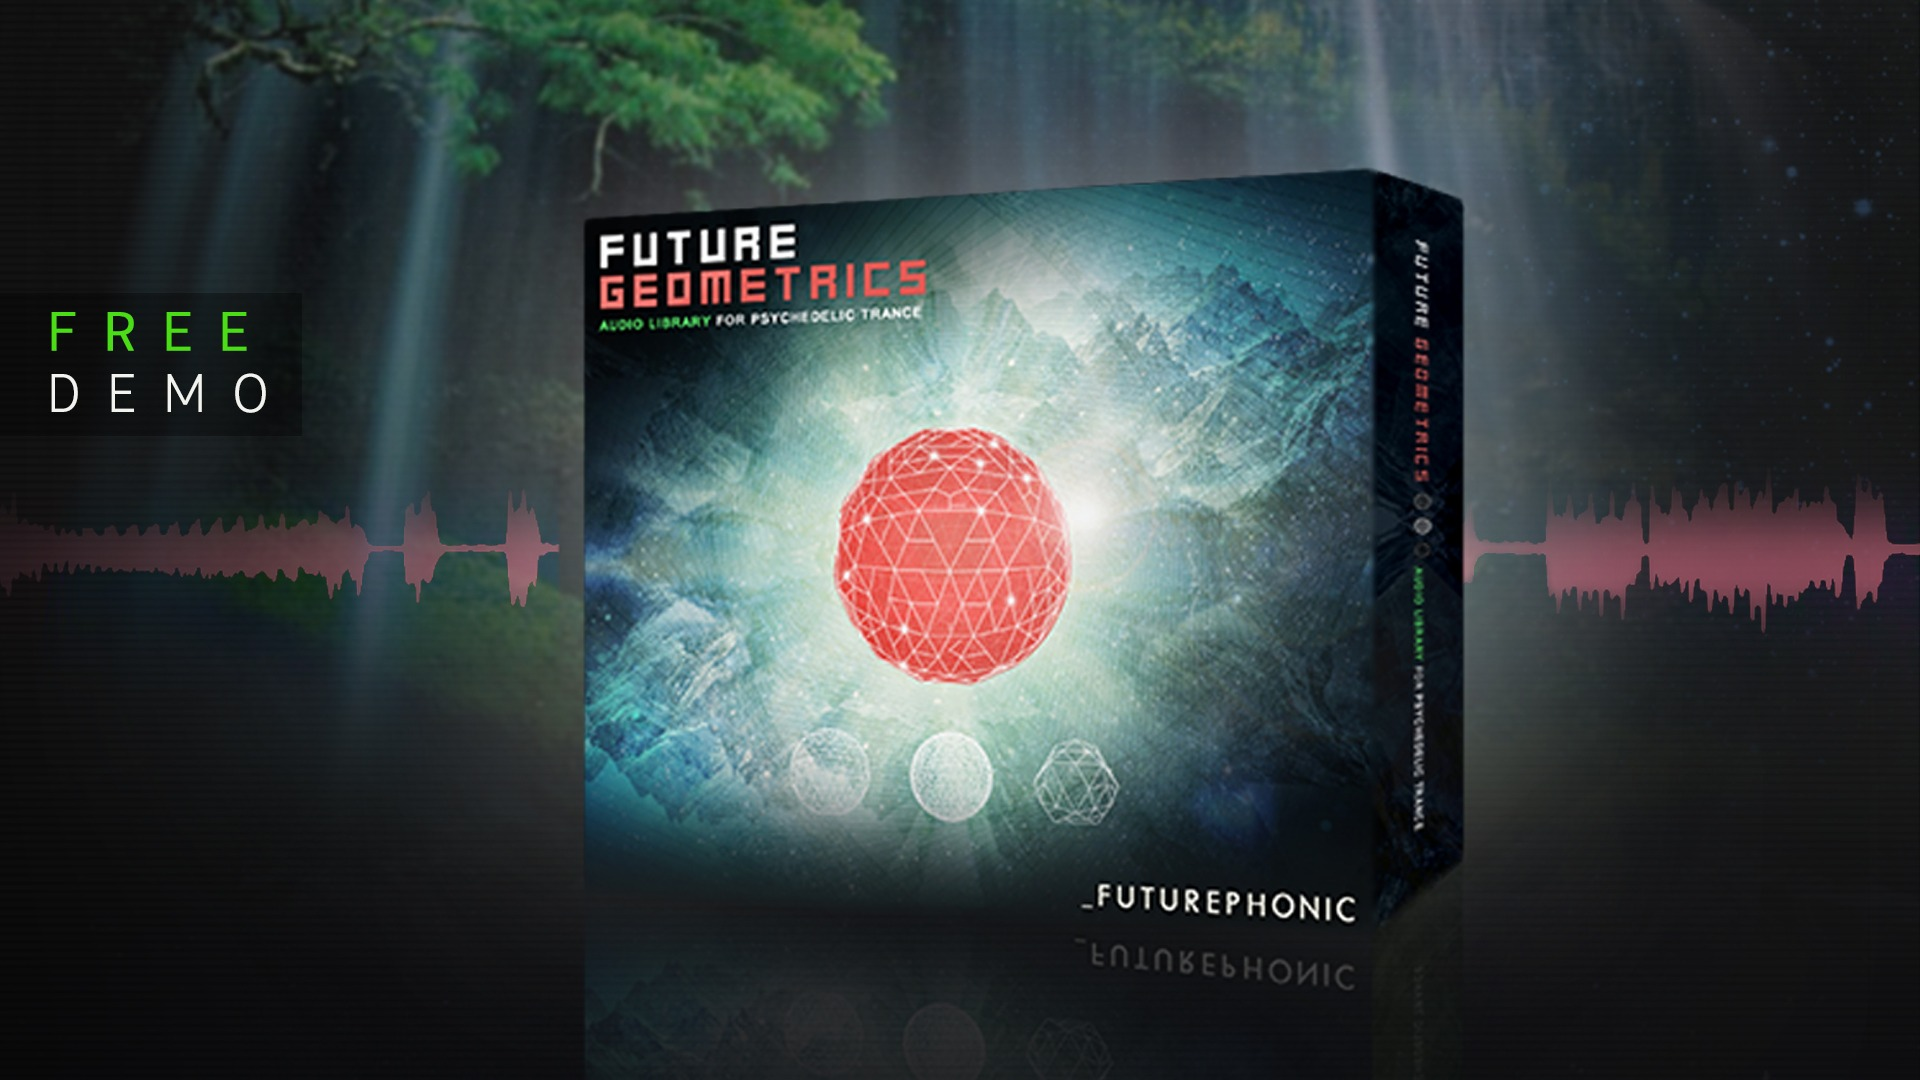 Free 250MB Demo - Future Geometrics